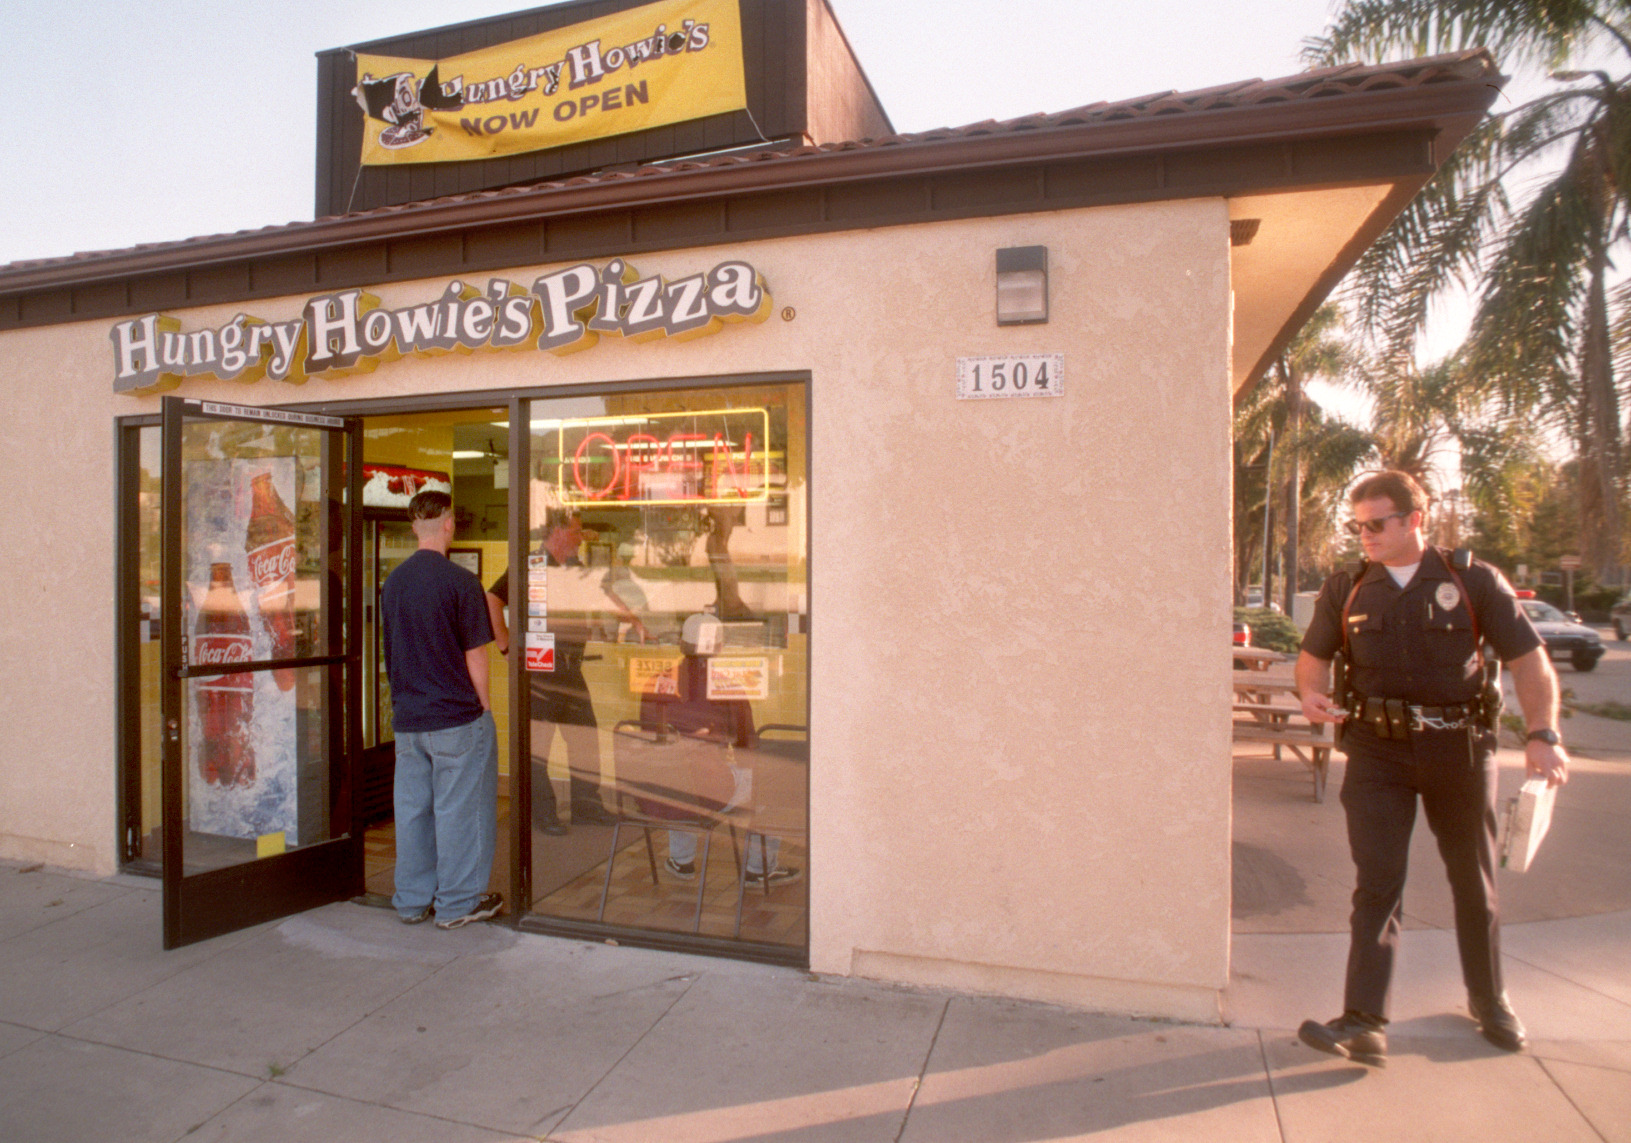 A Ventura Police officer investigates an armed robbery at Hungry Howie's Pizza on Thompson Boulevard